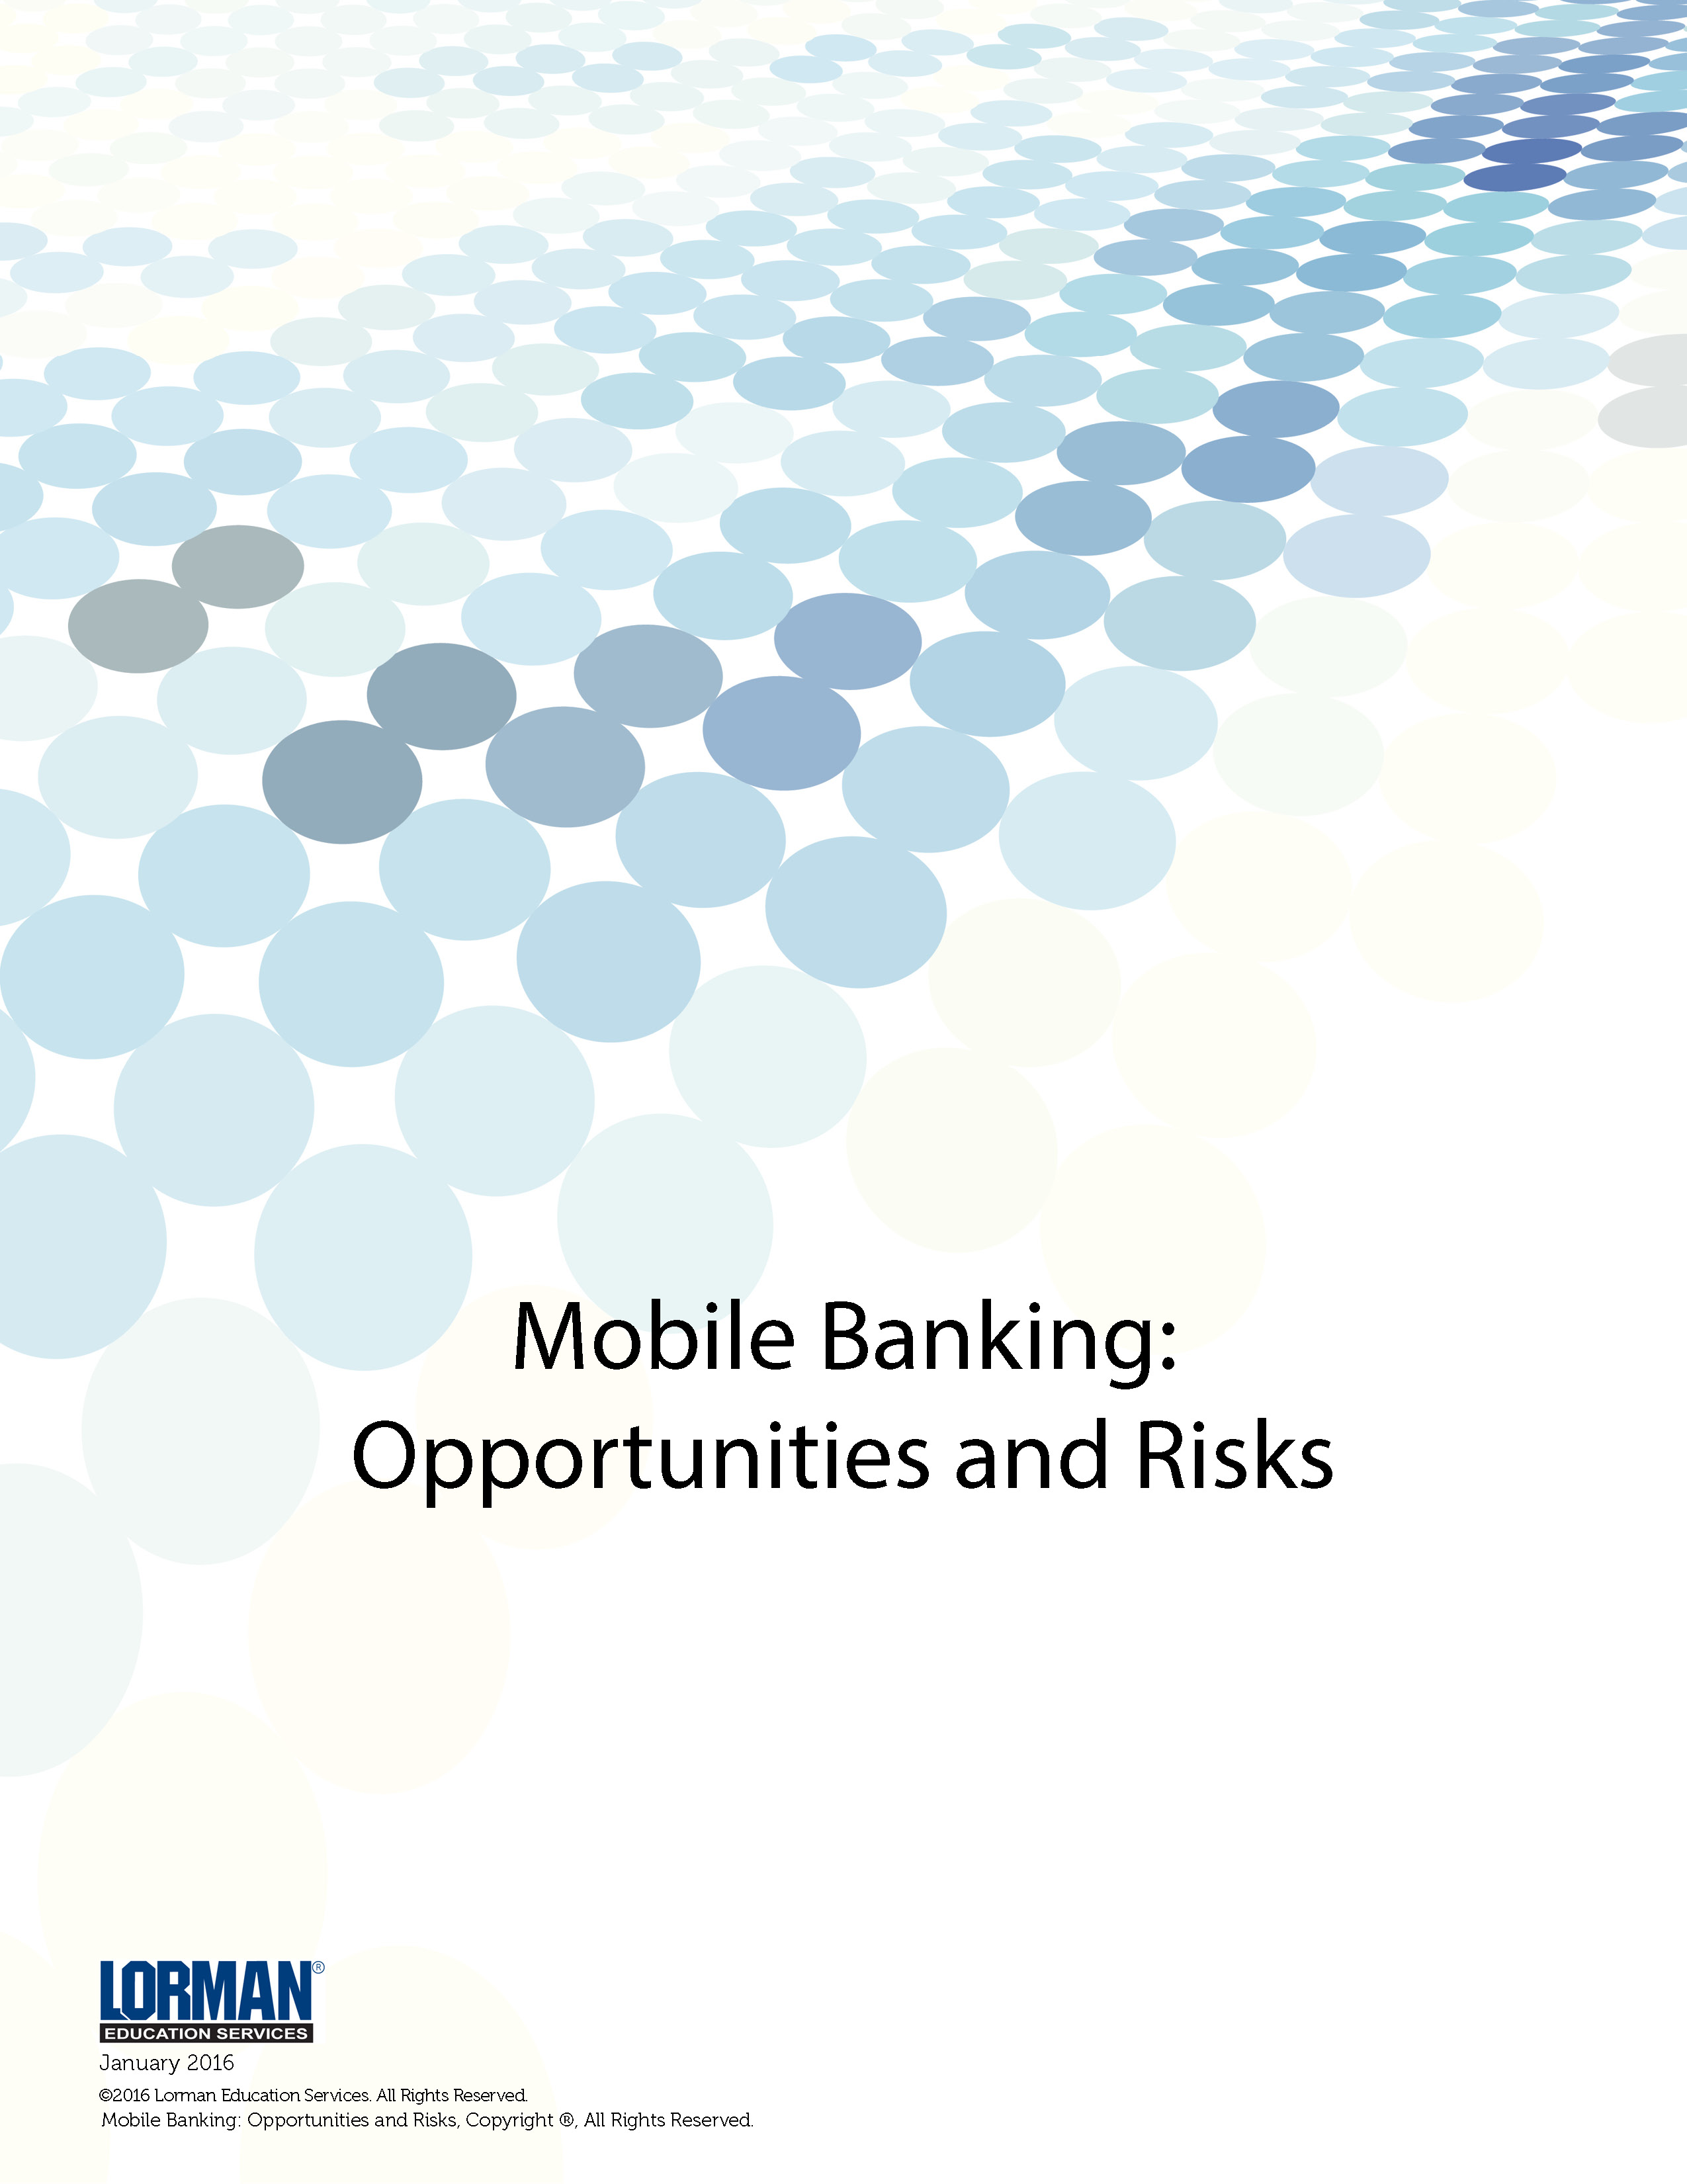 Mobile Banking: Opportunities and Risks